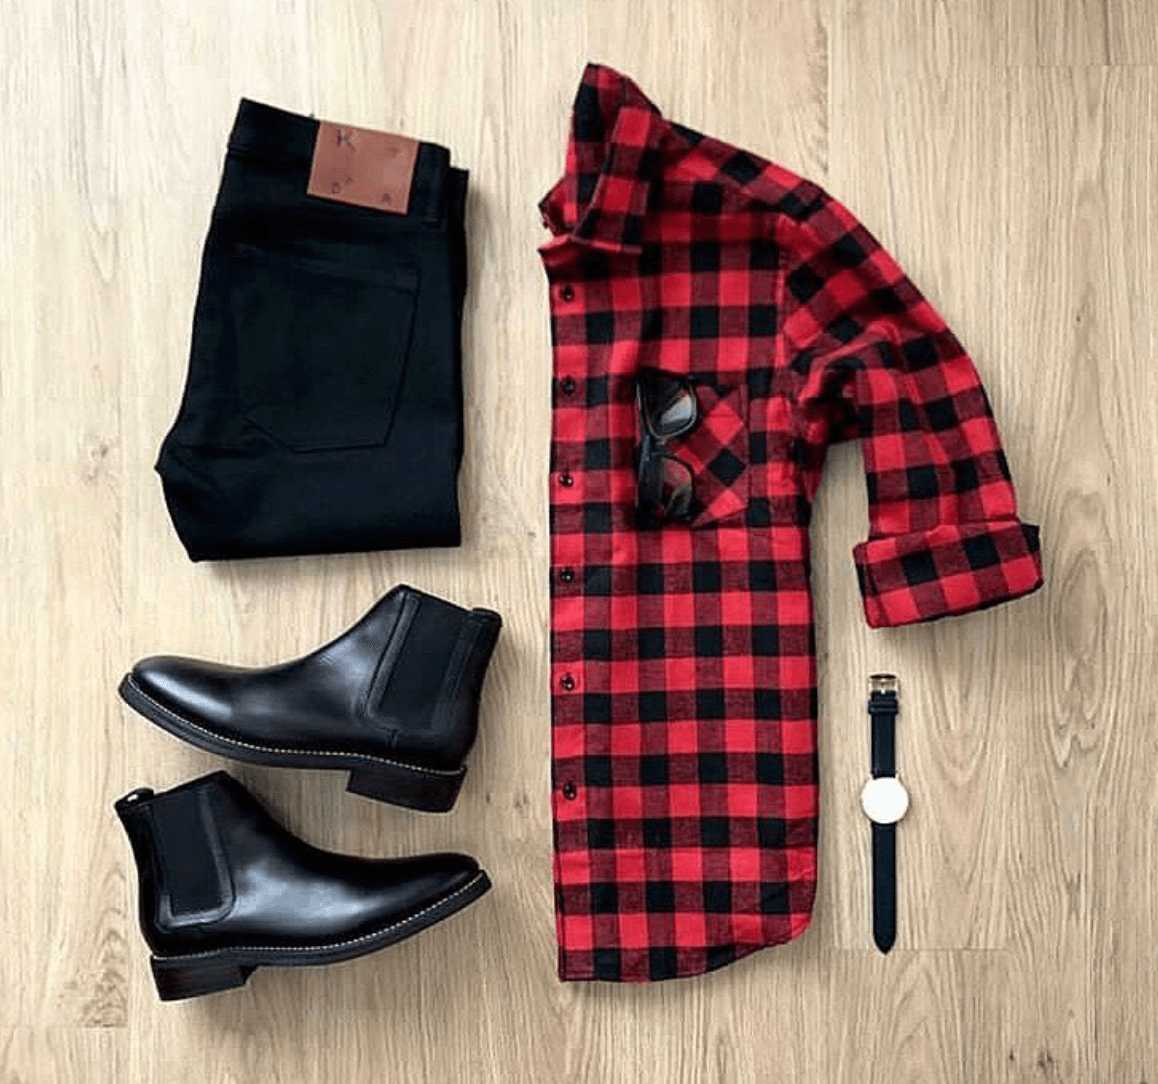 Men's Business Casual Attire Guide: 34 Best Outfits for 2020 – Stylo